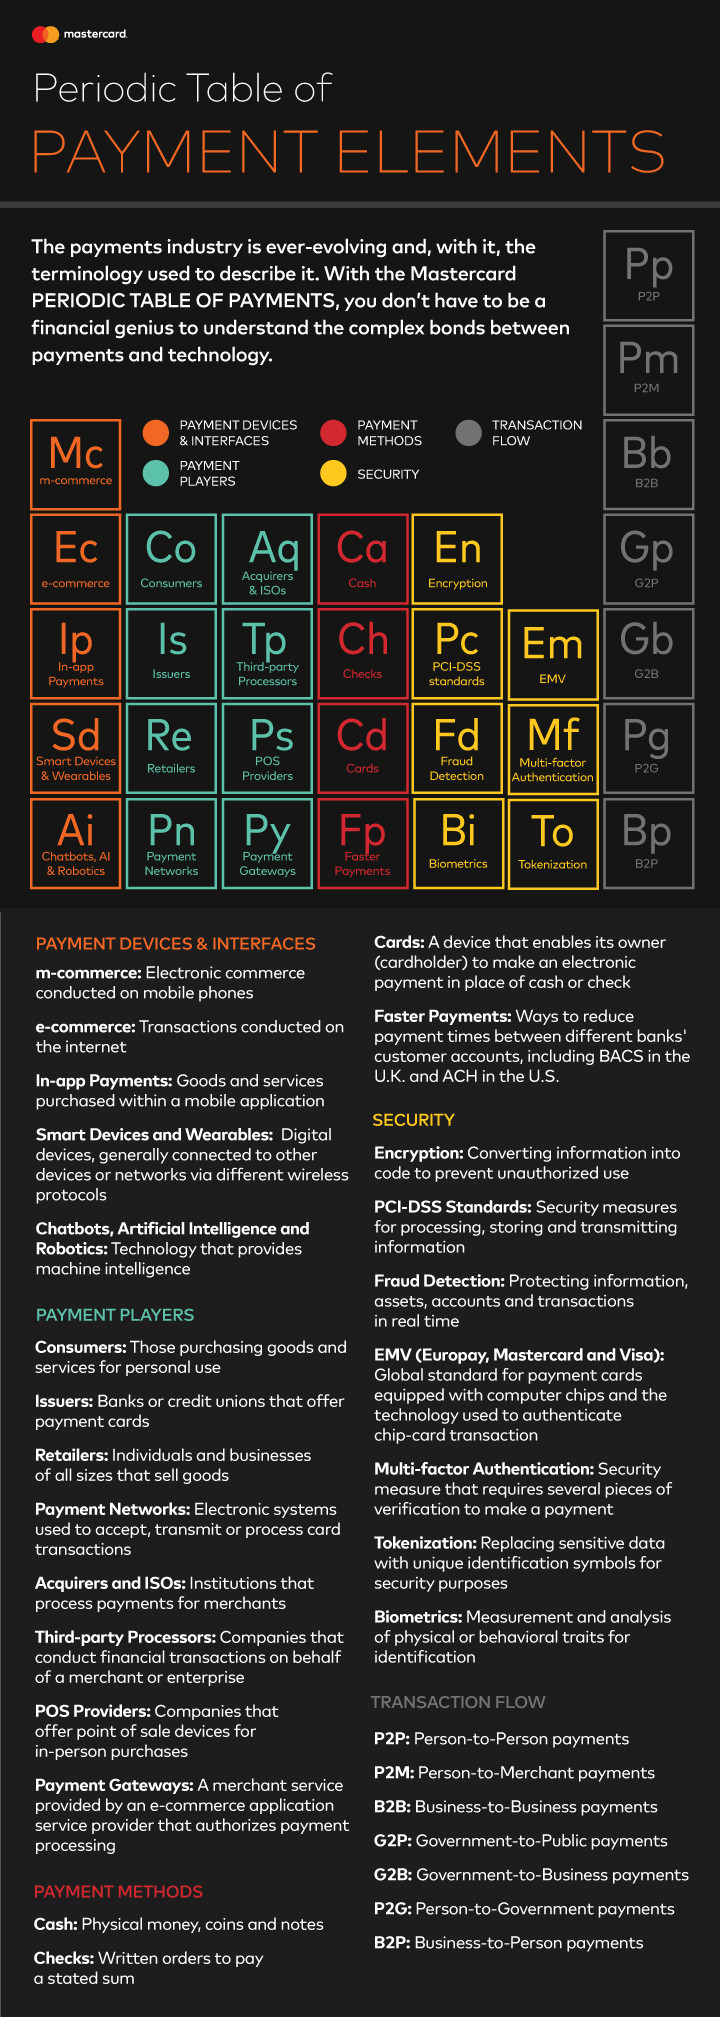 Mastercard Periodic Table Of Payment Elements Shows How All Comes